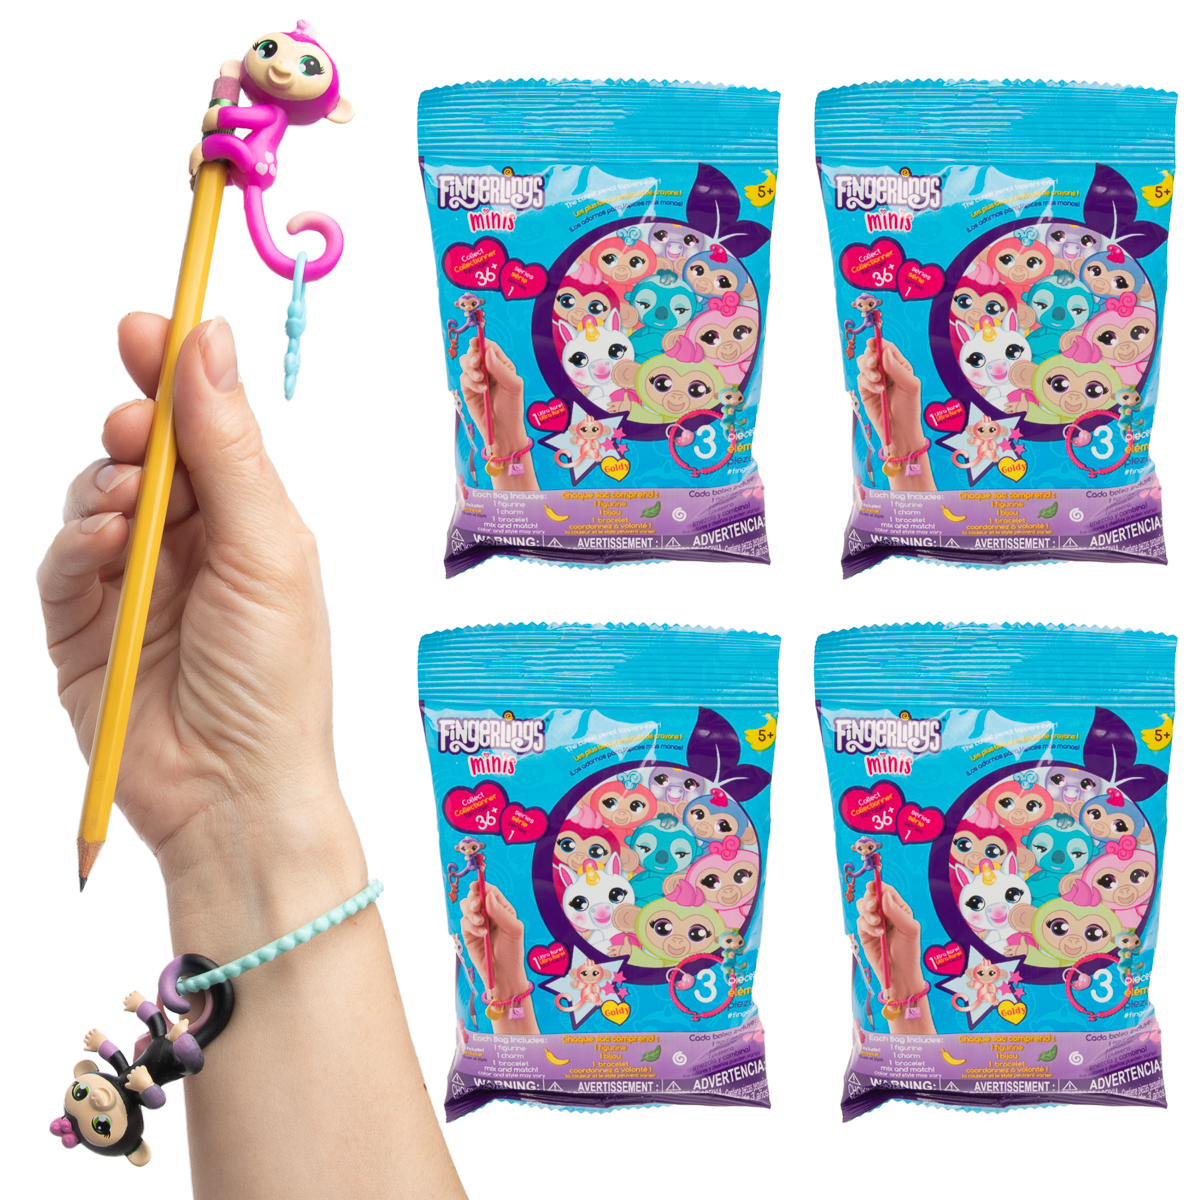 Wowwee (4 Pack) Fingerlings Blind Bags Pencil Toppers Charms Bracelets Bulk Series 1 Party Favors For Kids Toys